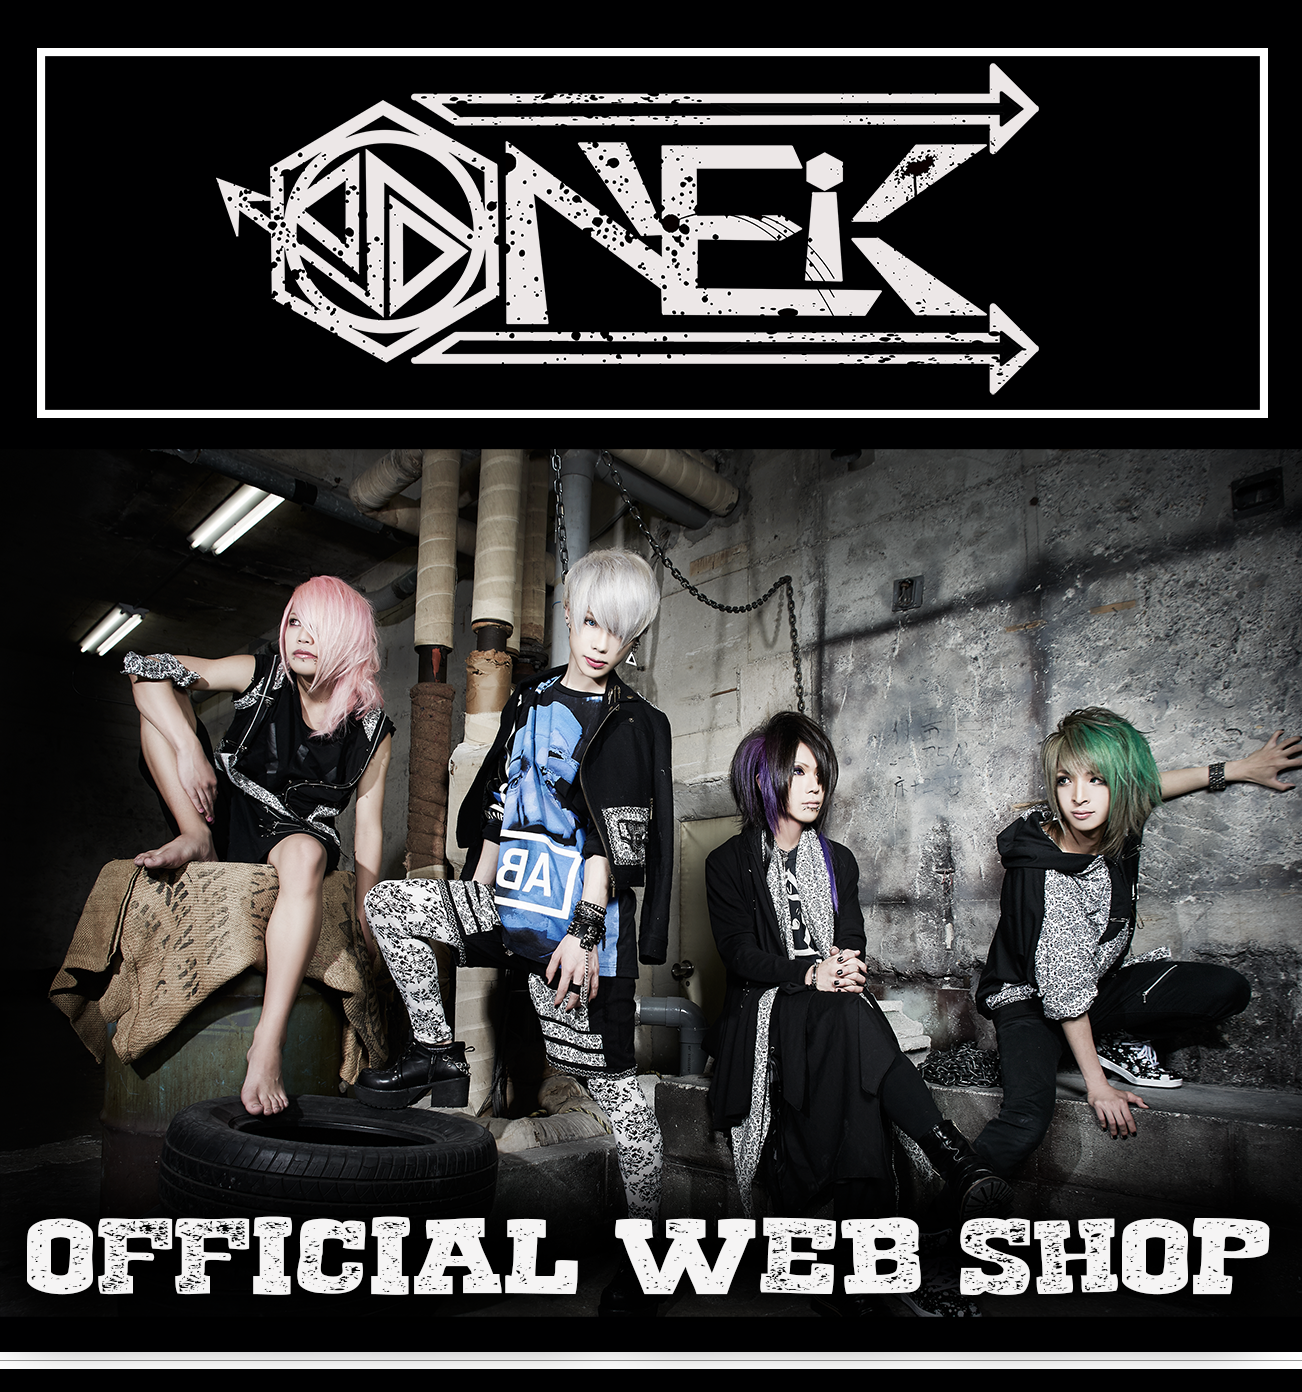 NEiK OFFICIALWEBSHOP